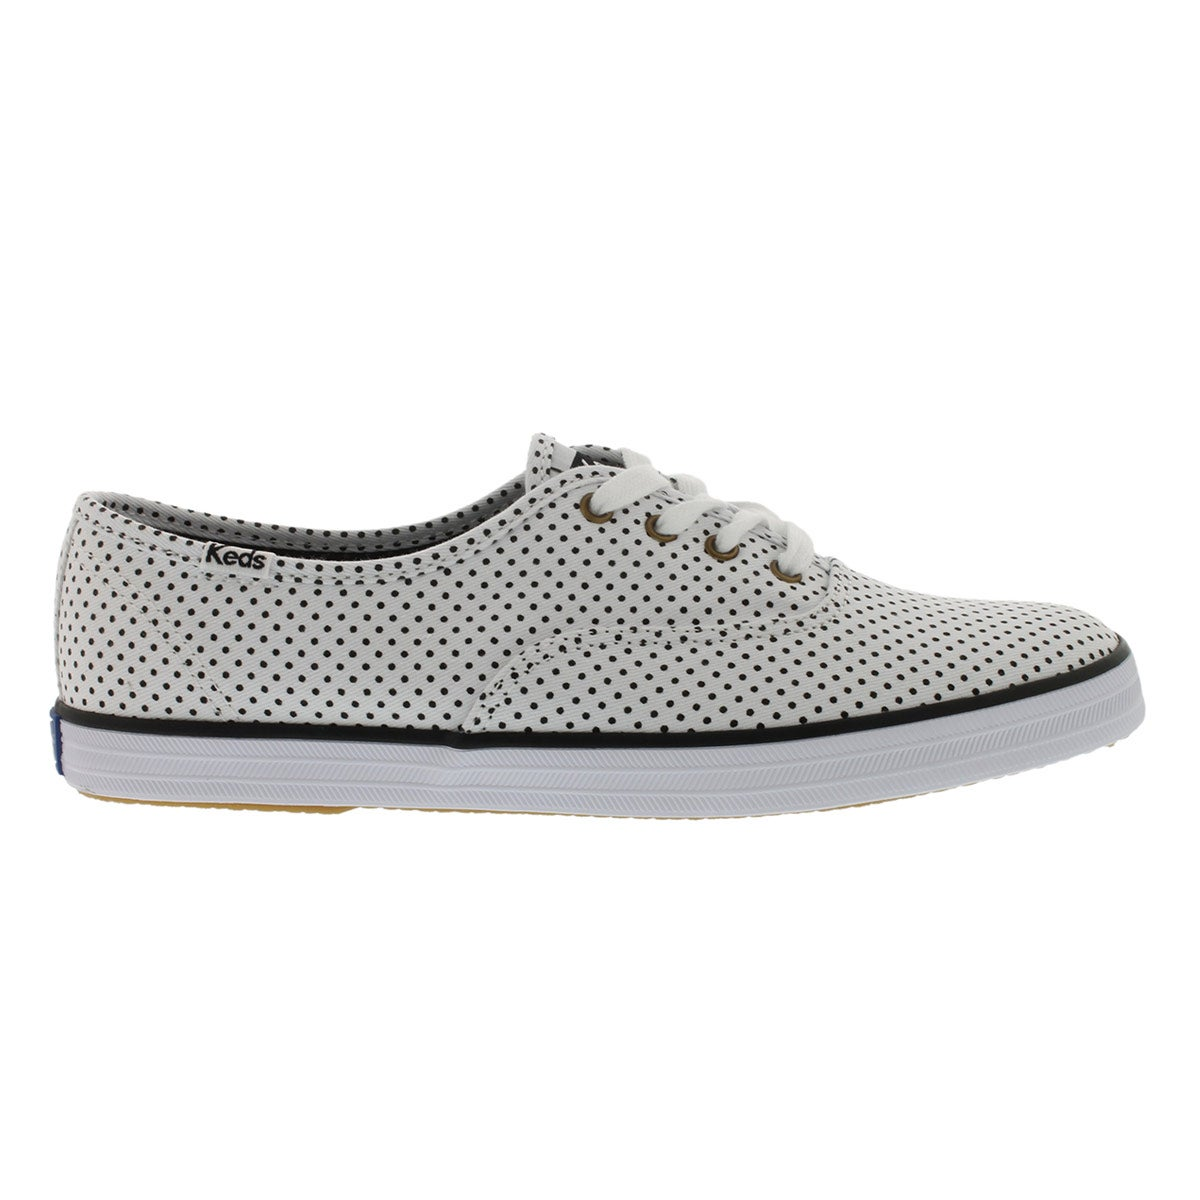 Lds Champion Micro Dot white sneaker